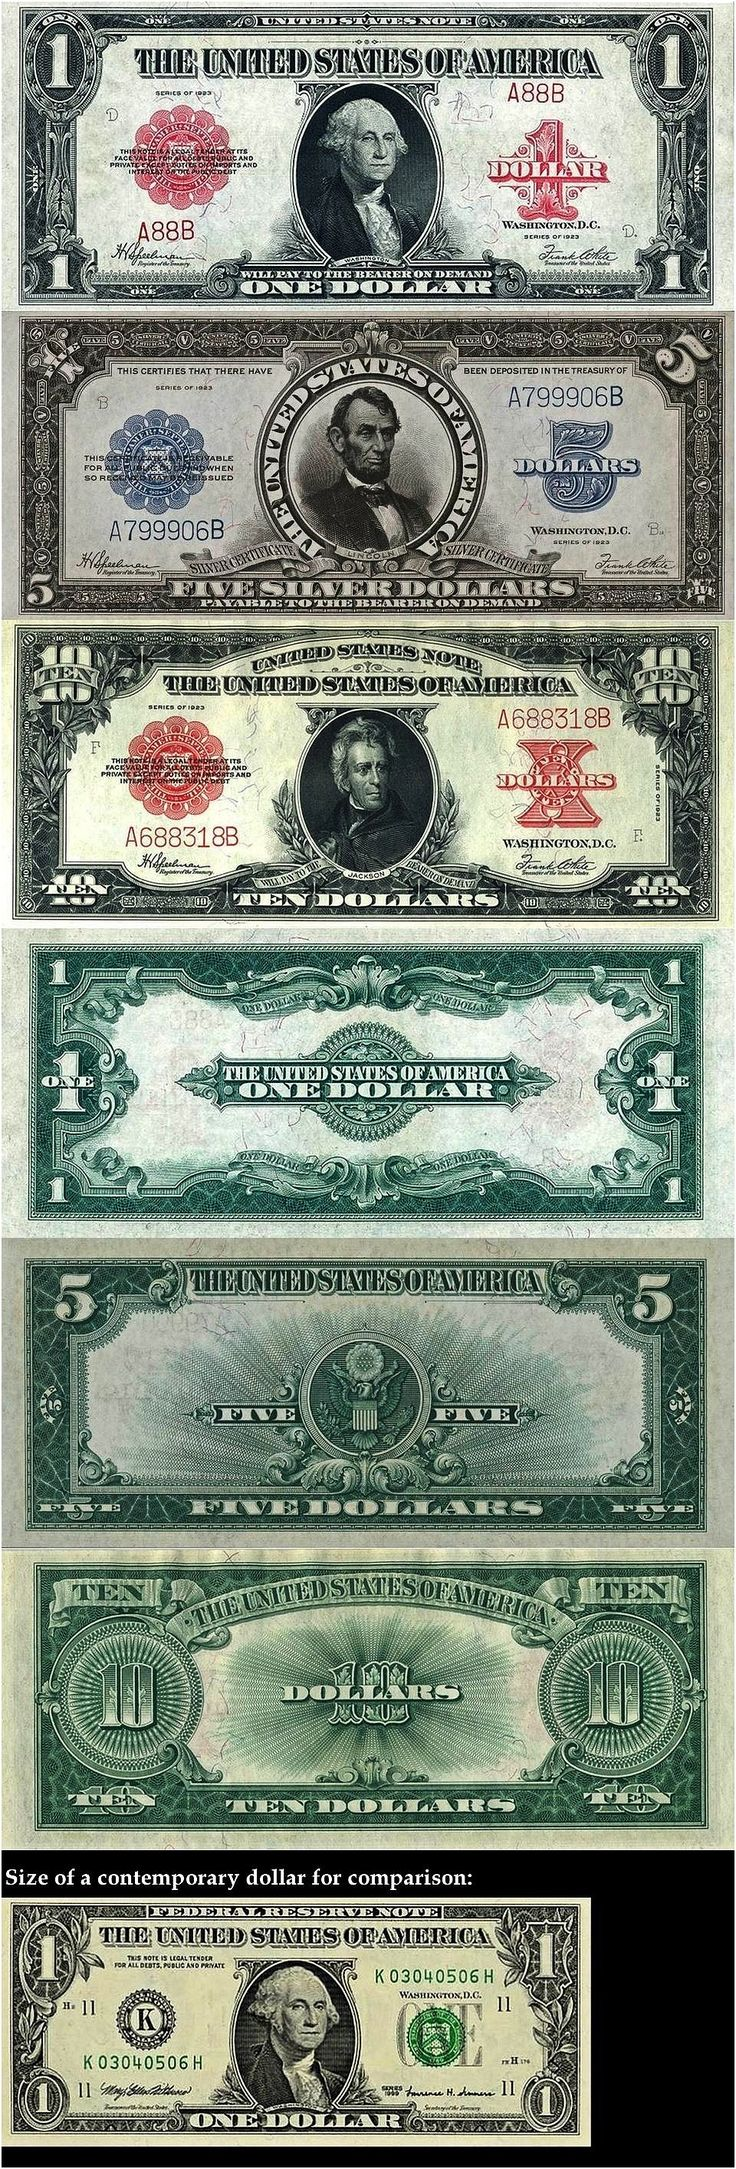 Currency transition